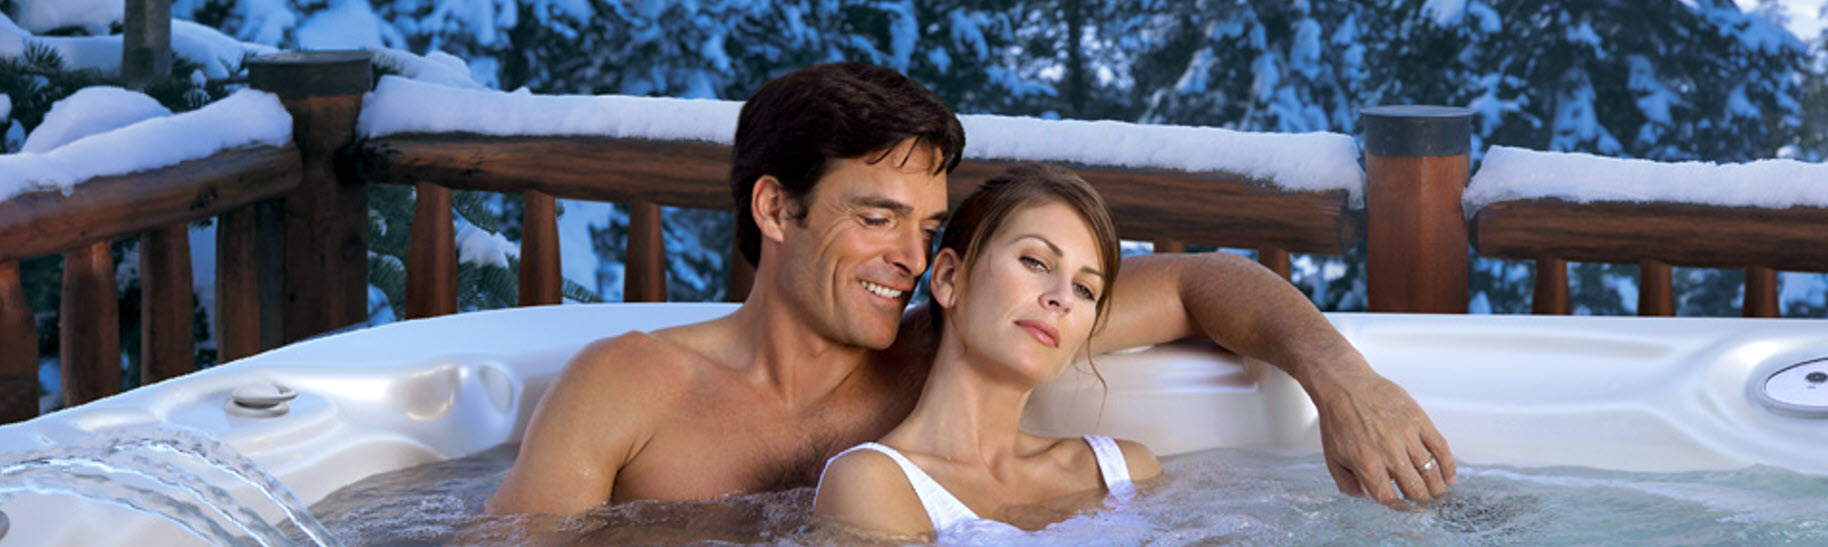 "Get Your Winter ""Me Time"" in a Your Own Spa, Hot Tub Sale West Allis"